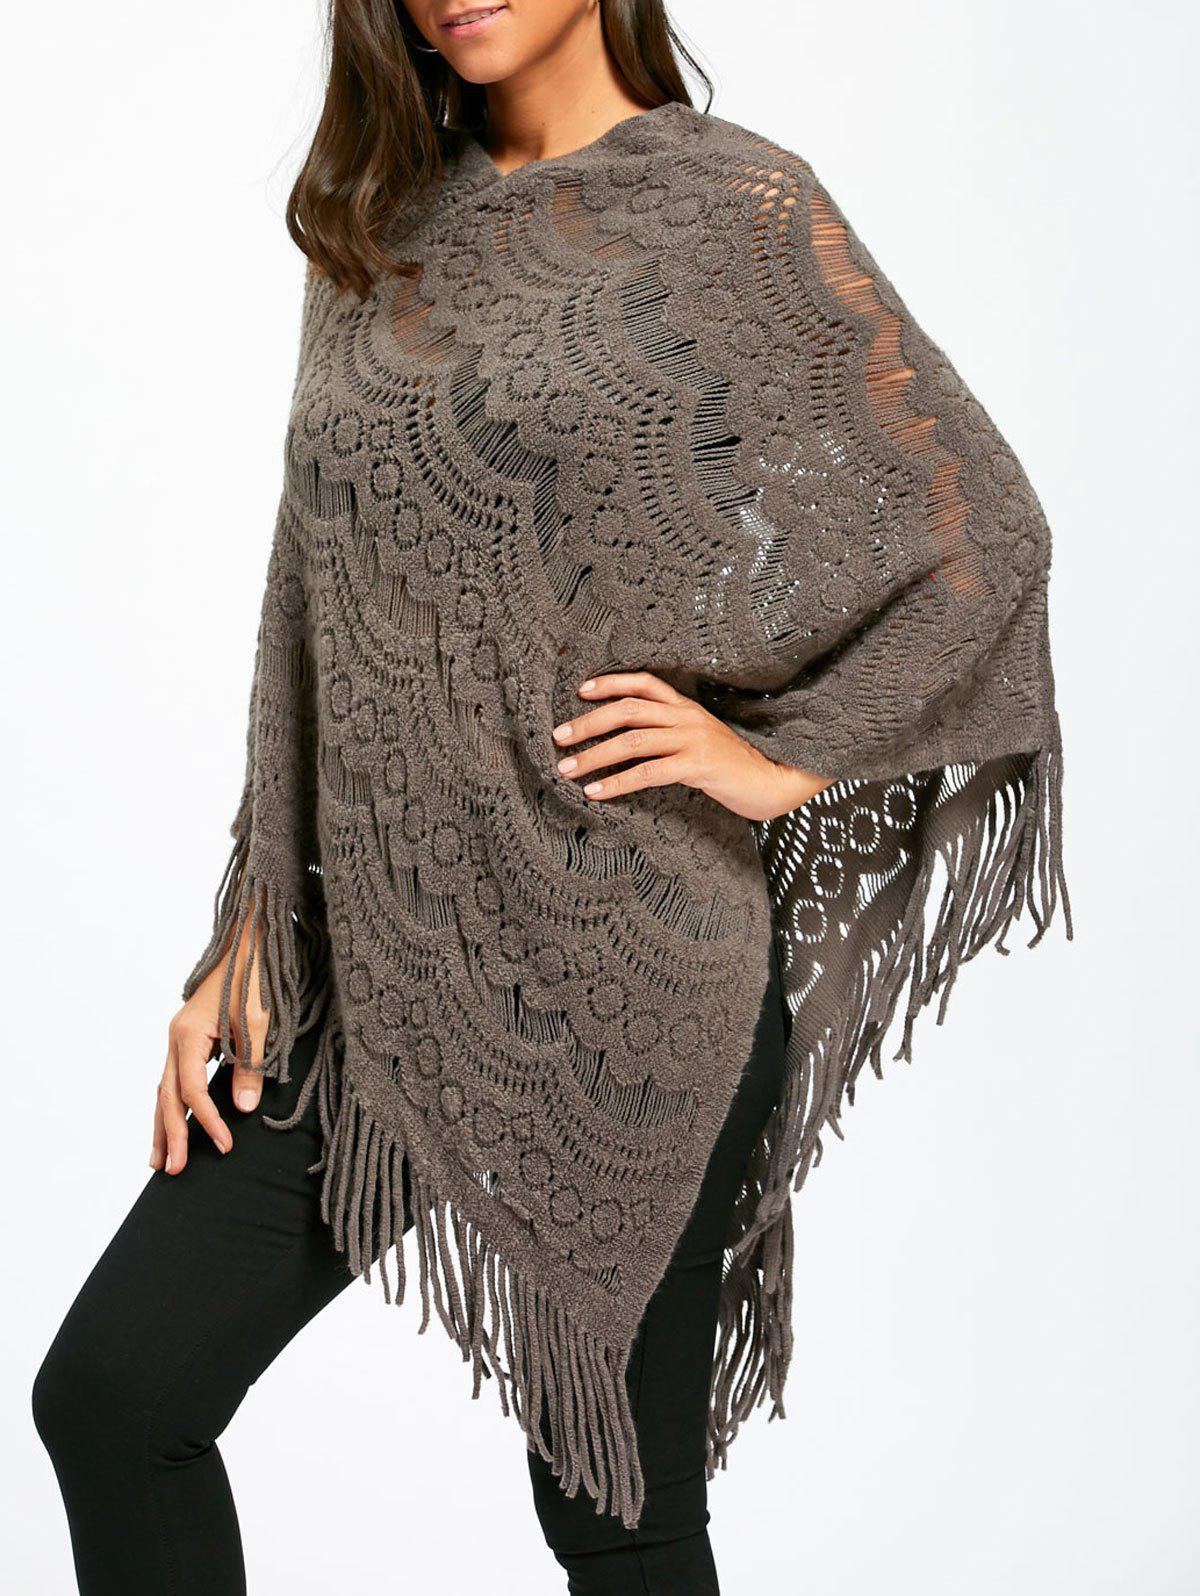 Asymmetric Fringed Pullover Chunky Poncho SweaterWOMEN<br><br>Size: ONE SIZE; Color: GRAY; Type: Pullovers; Material: Polyester,Spandex; Sleeve Length: Full; Collar: Round Neck; Style: Fashion; Pattern Type: Solid; Season: Fall,Spring; Weight: 0.3500kg; Package Contents: 1 x Sweater;